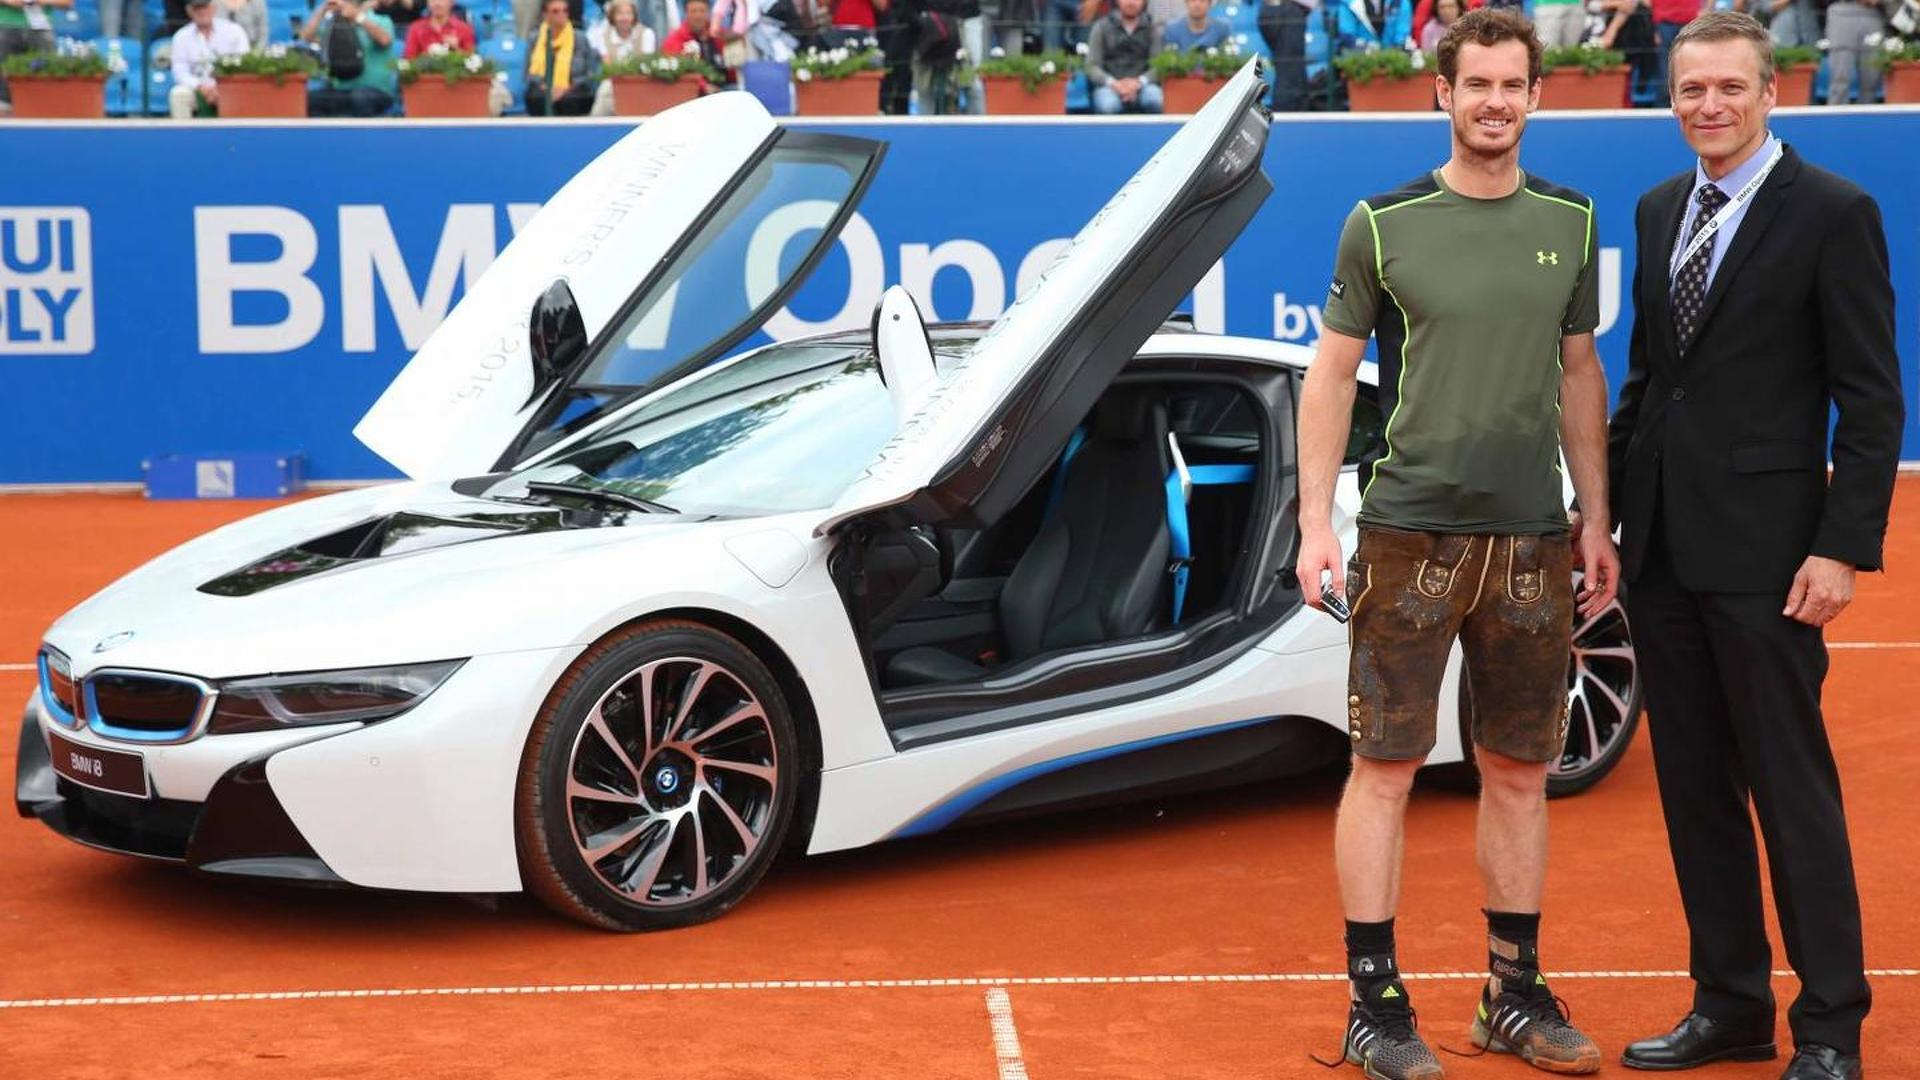 Bmw Of Murray >> Andy Murray Wins 2015 Bmw Open Earns Brand New Bmw I8